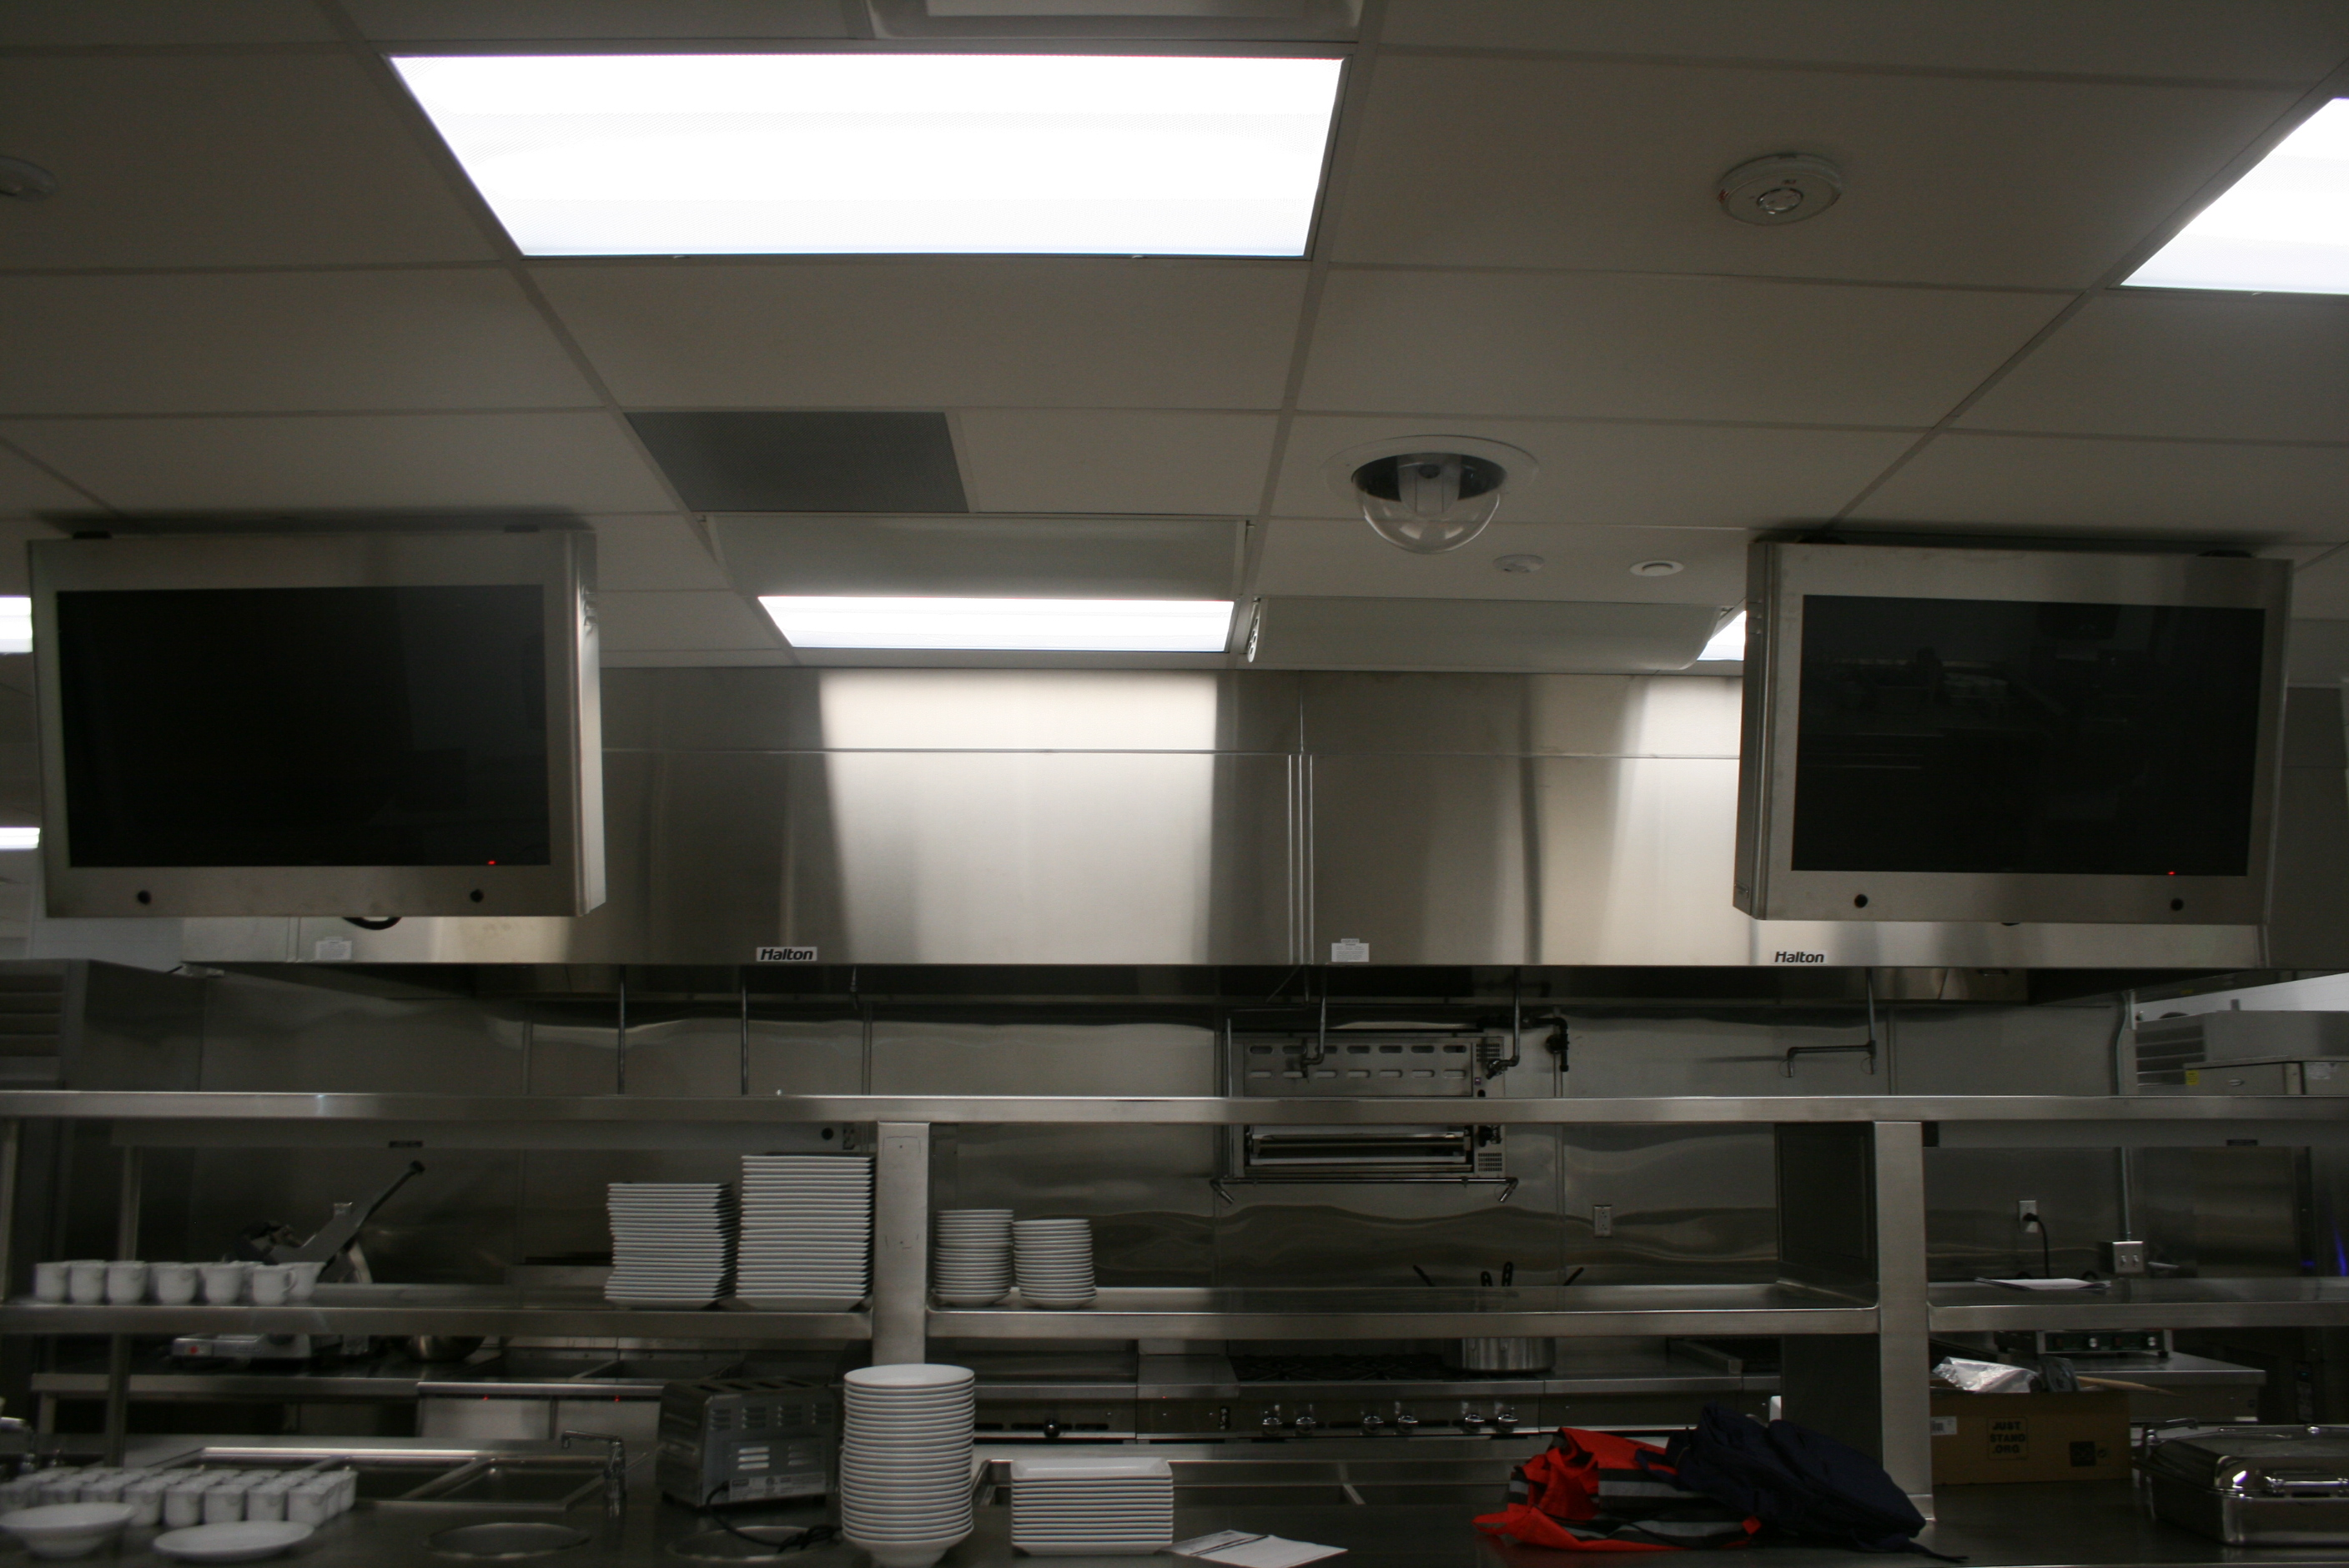 Flat panel displays mounted above each serving station